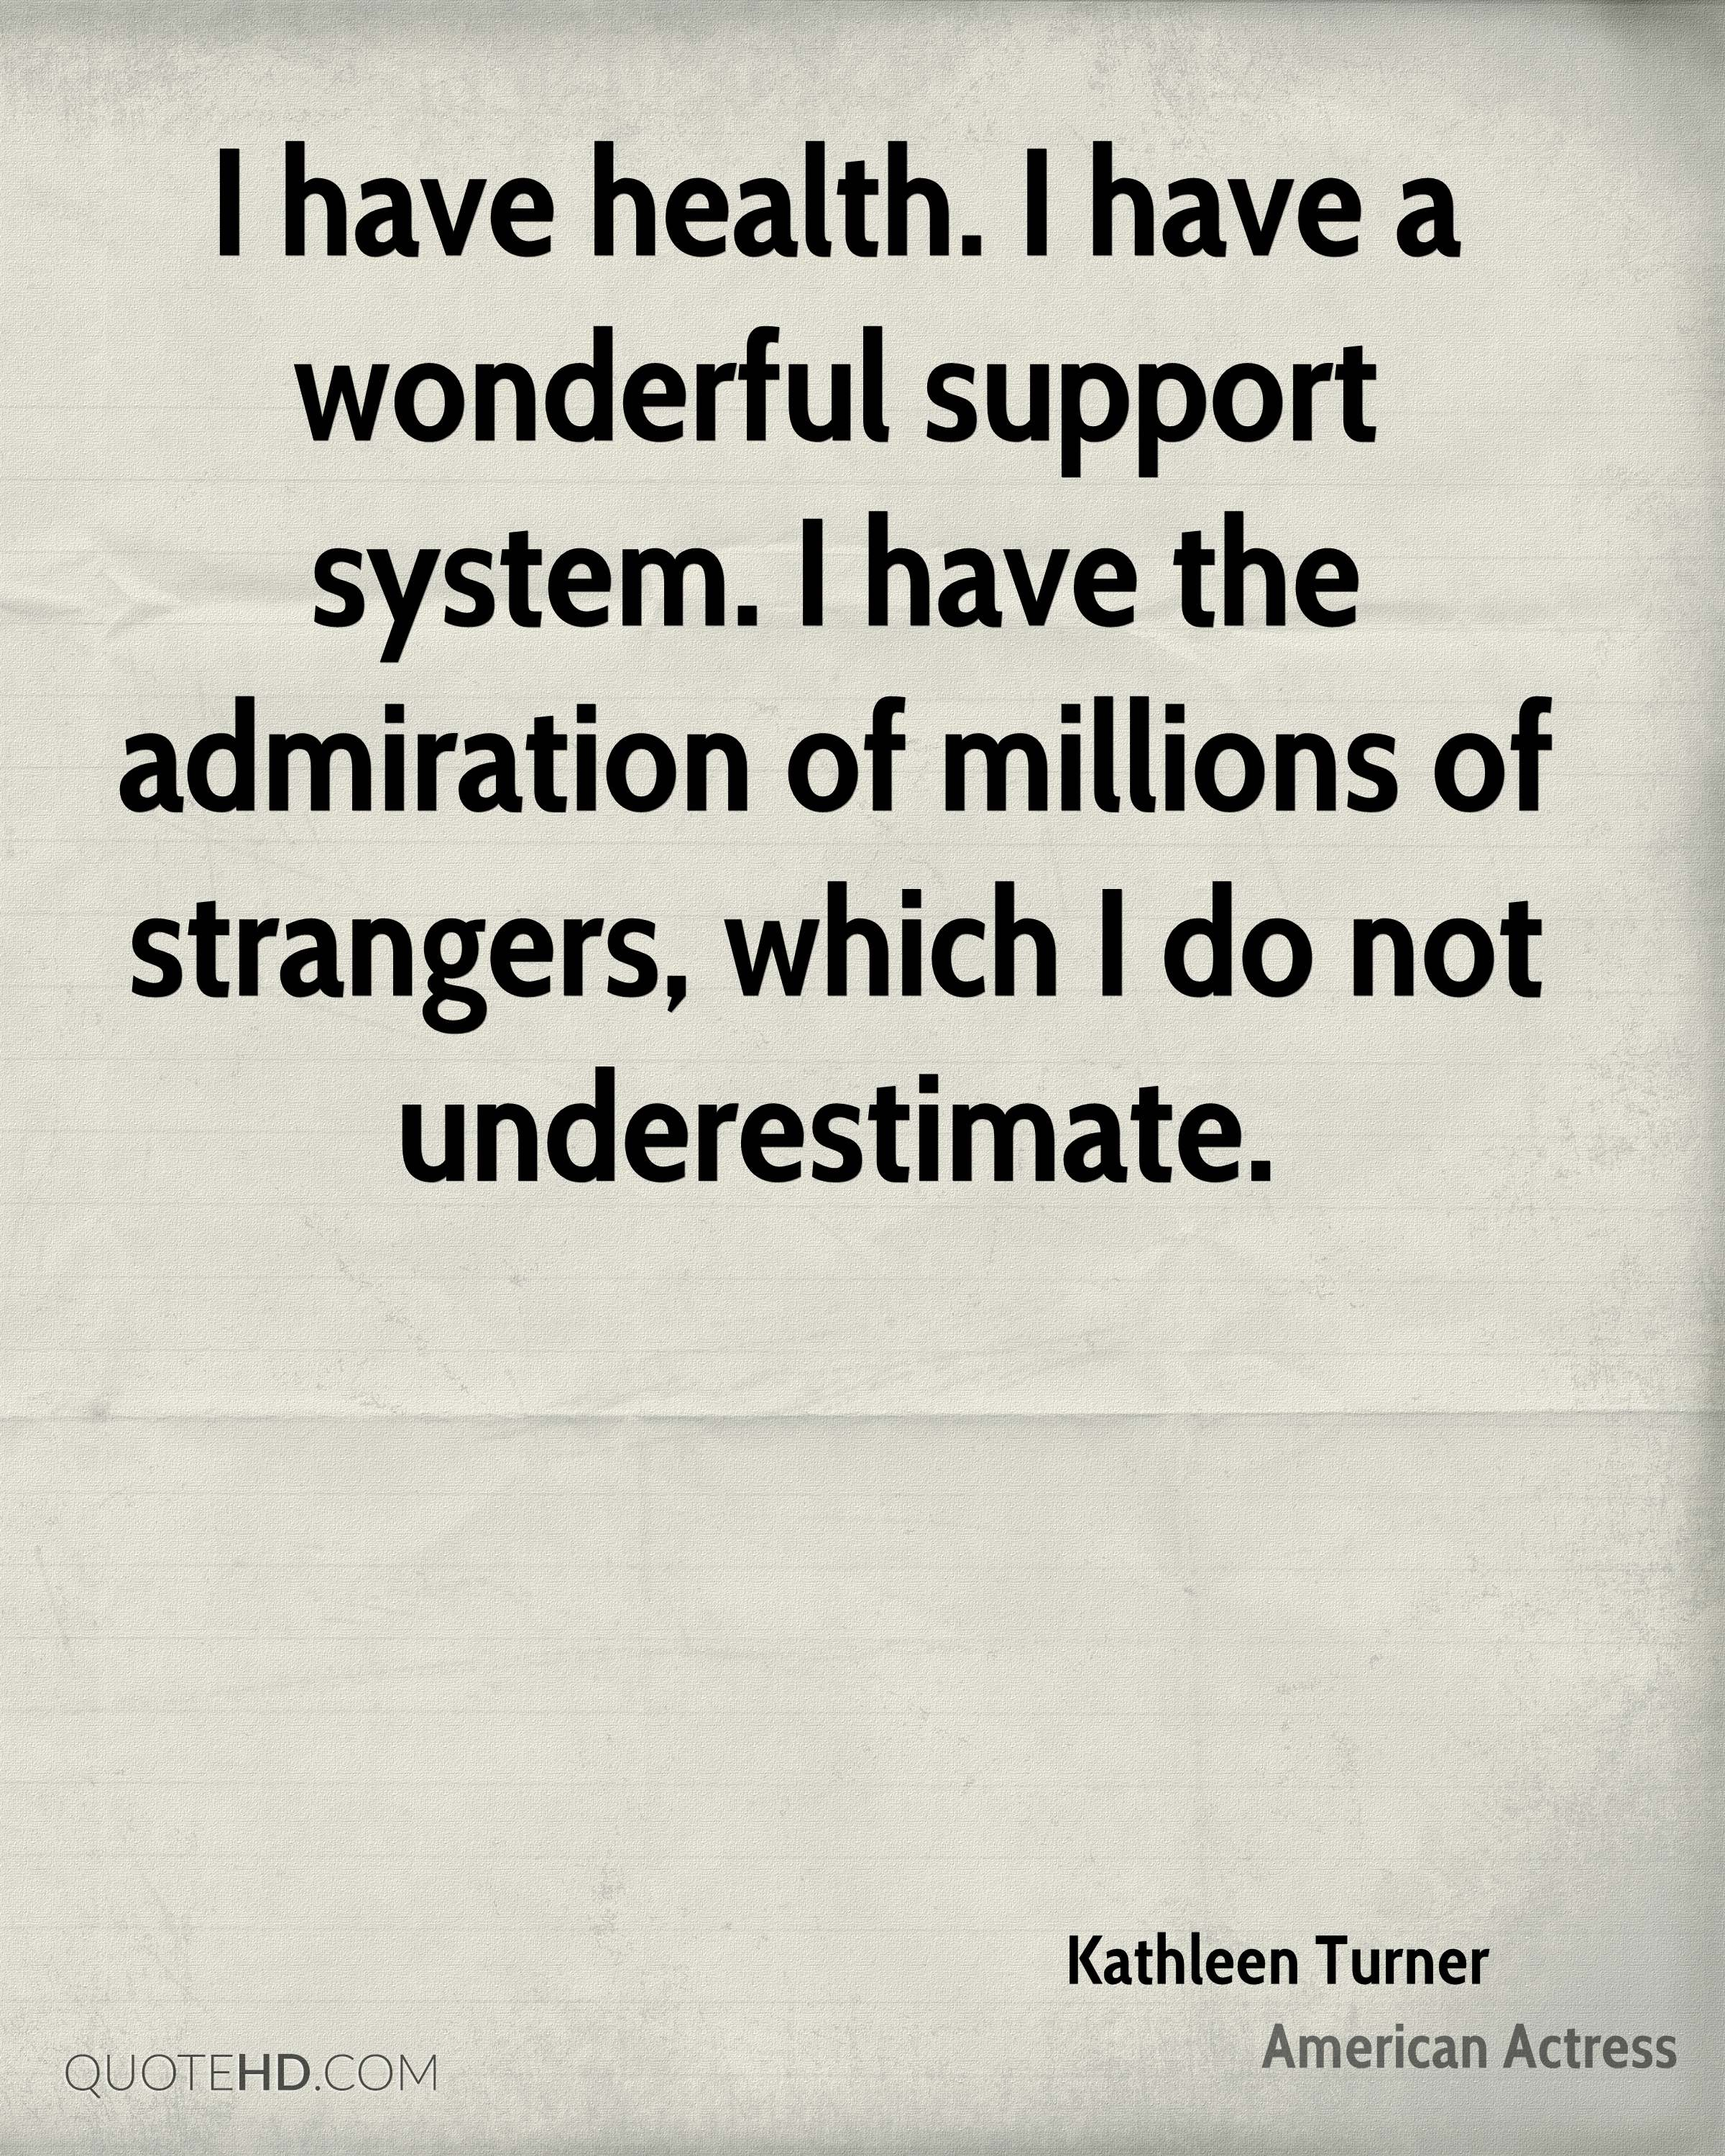 I have health. I have a wonderful support system. I have the admiration of millions of strangers, which I do not underestimate.